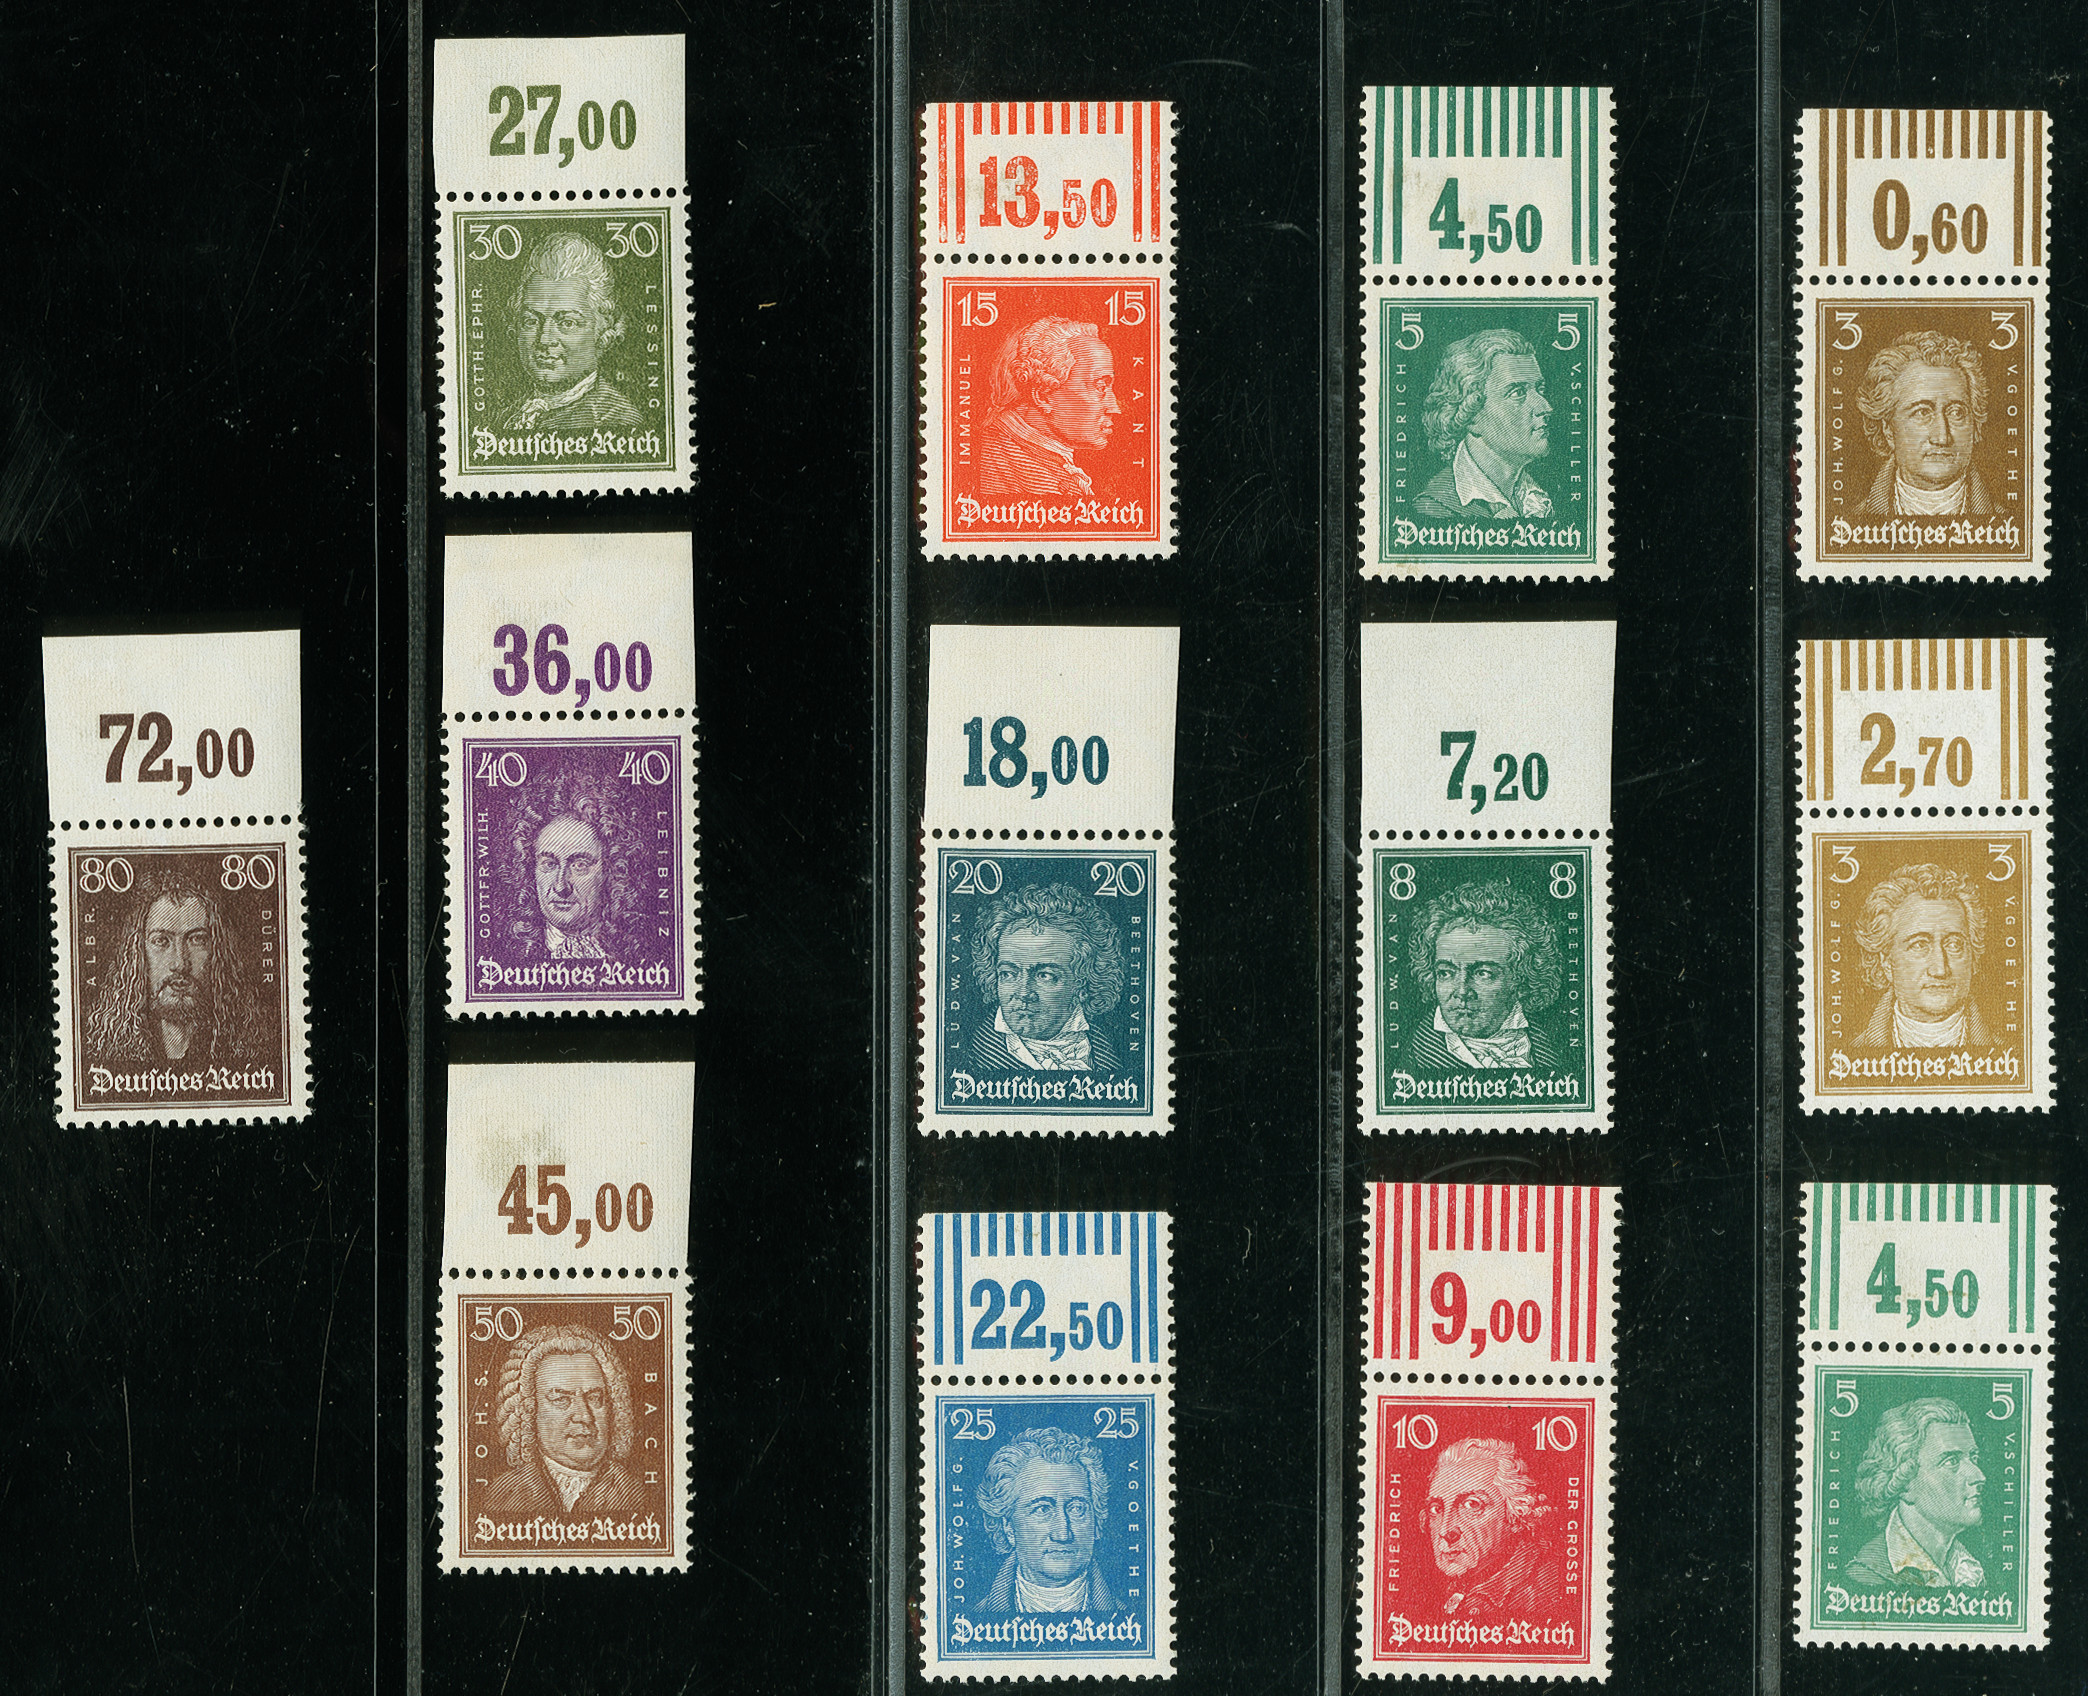 Lot 3150 - Main catalogue German Empire -  Heinrich Koehler Auktionen Auction #368- Day 5